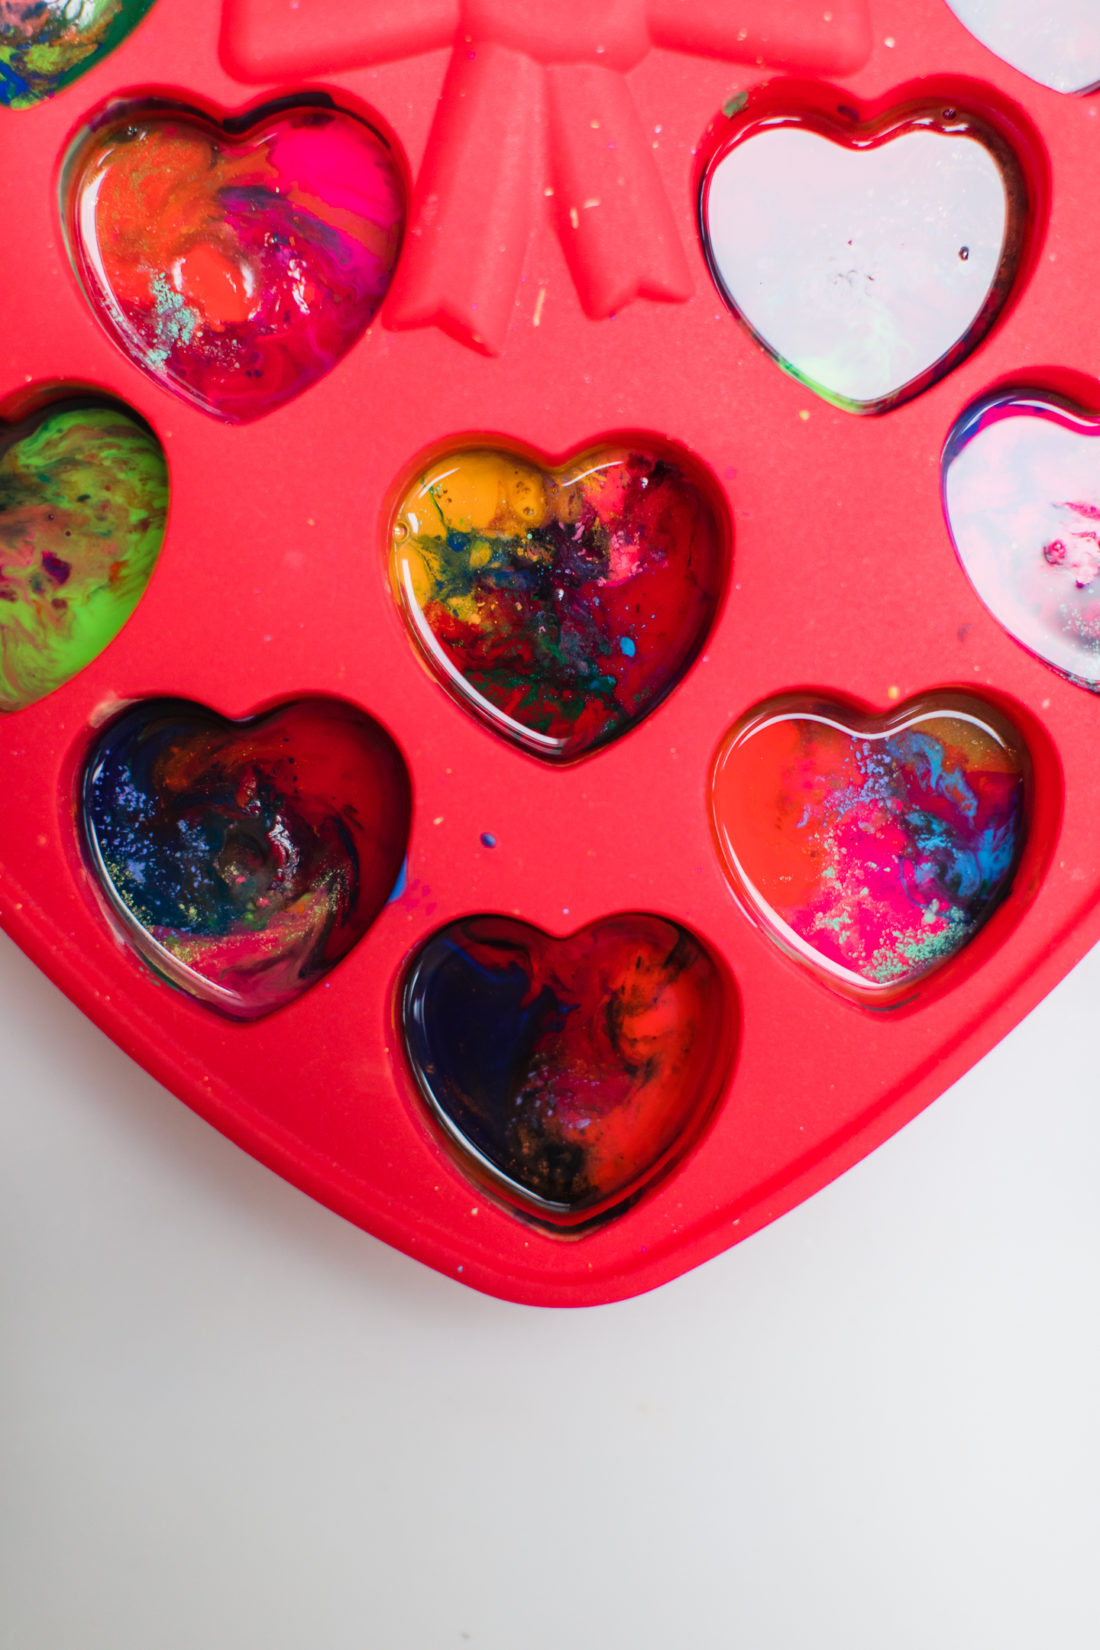 Melted crayon bits in a heart shaped mold for Valentine's Day favors